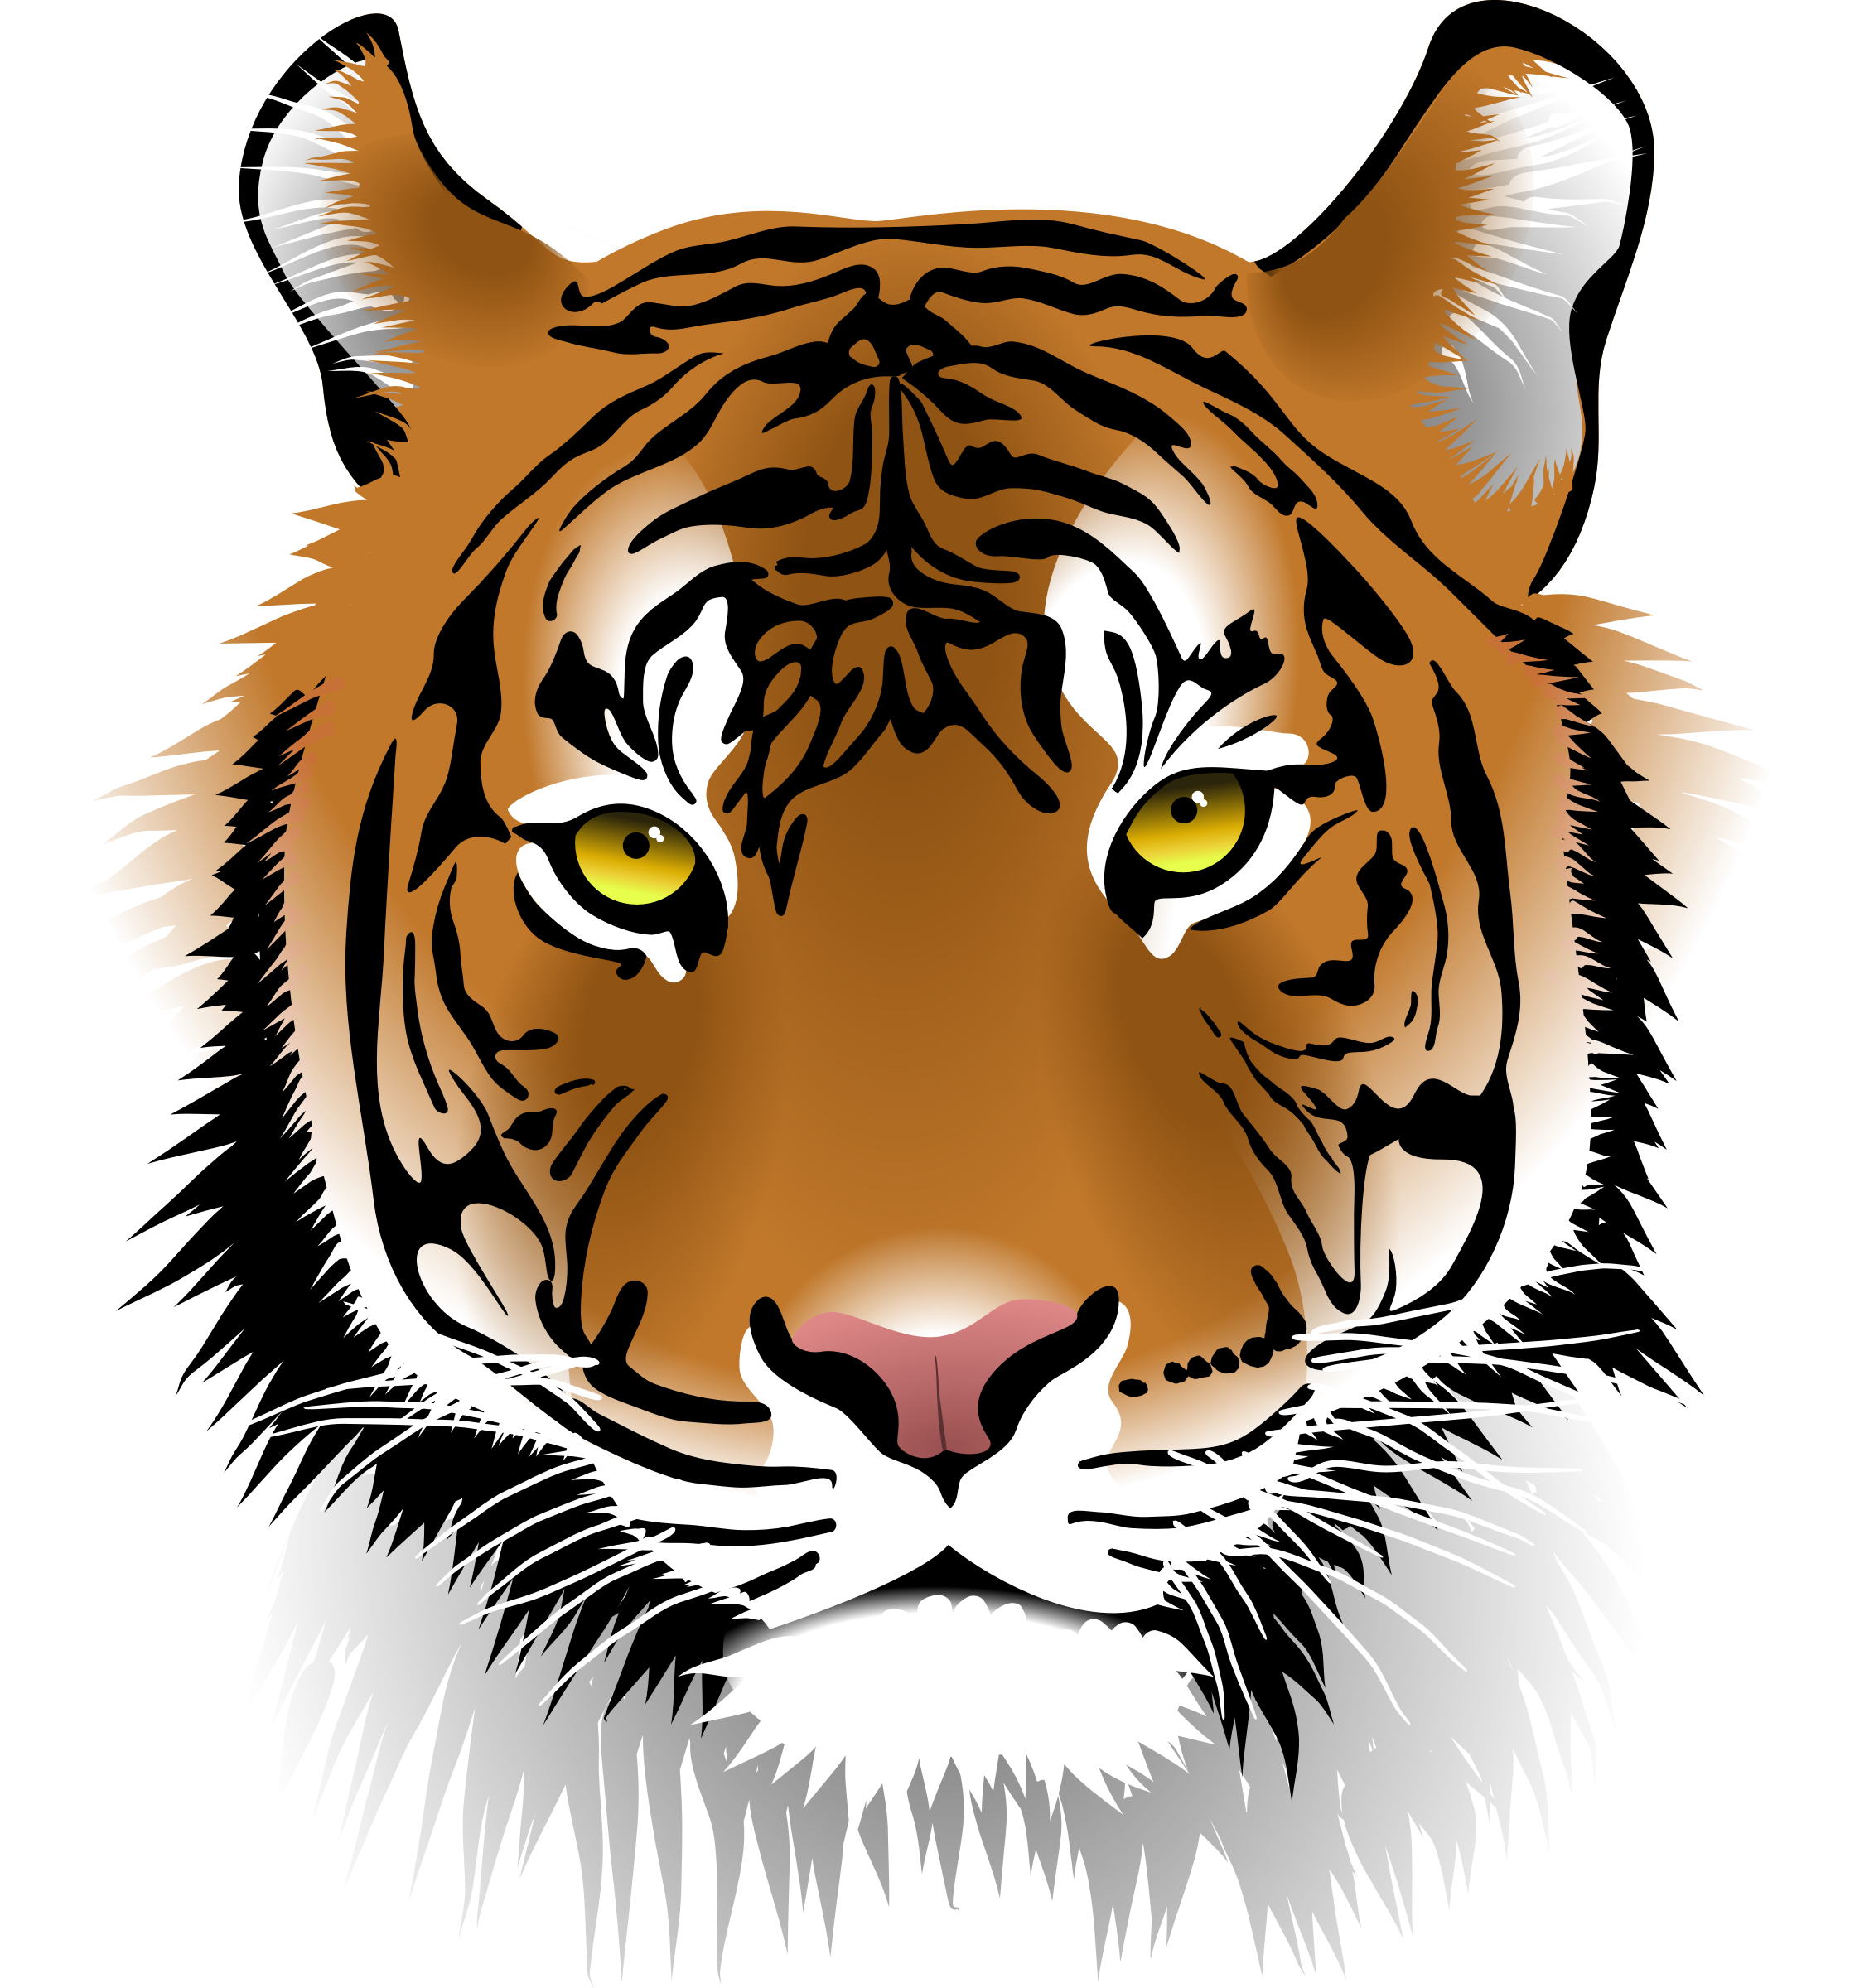 Drawing tigers angry. Tiger png images transparent